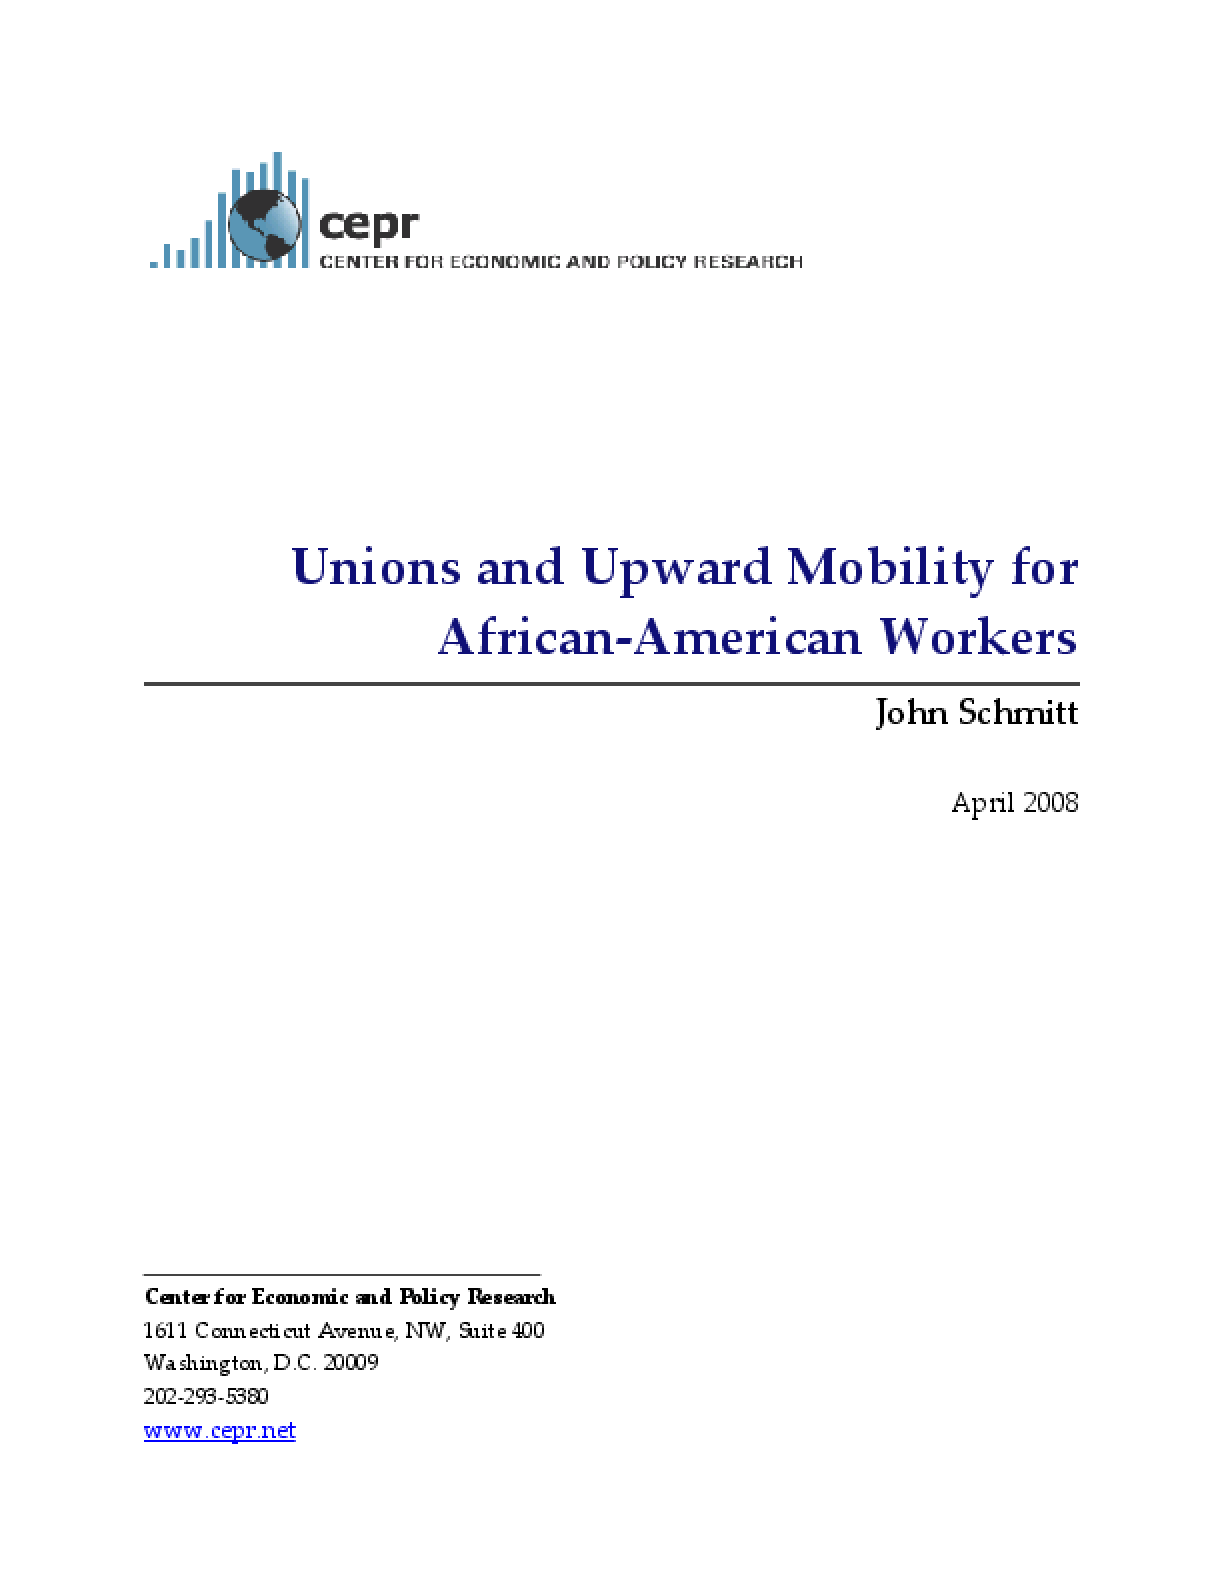 Unions and Upward Mobility for African-American Workers